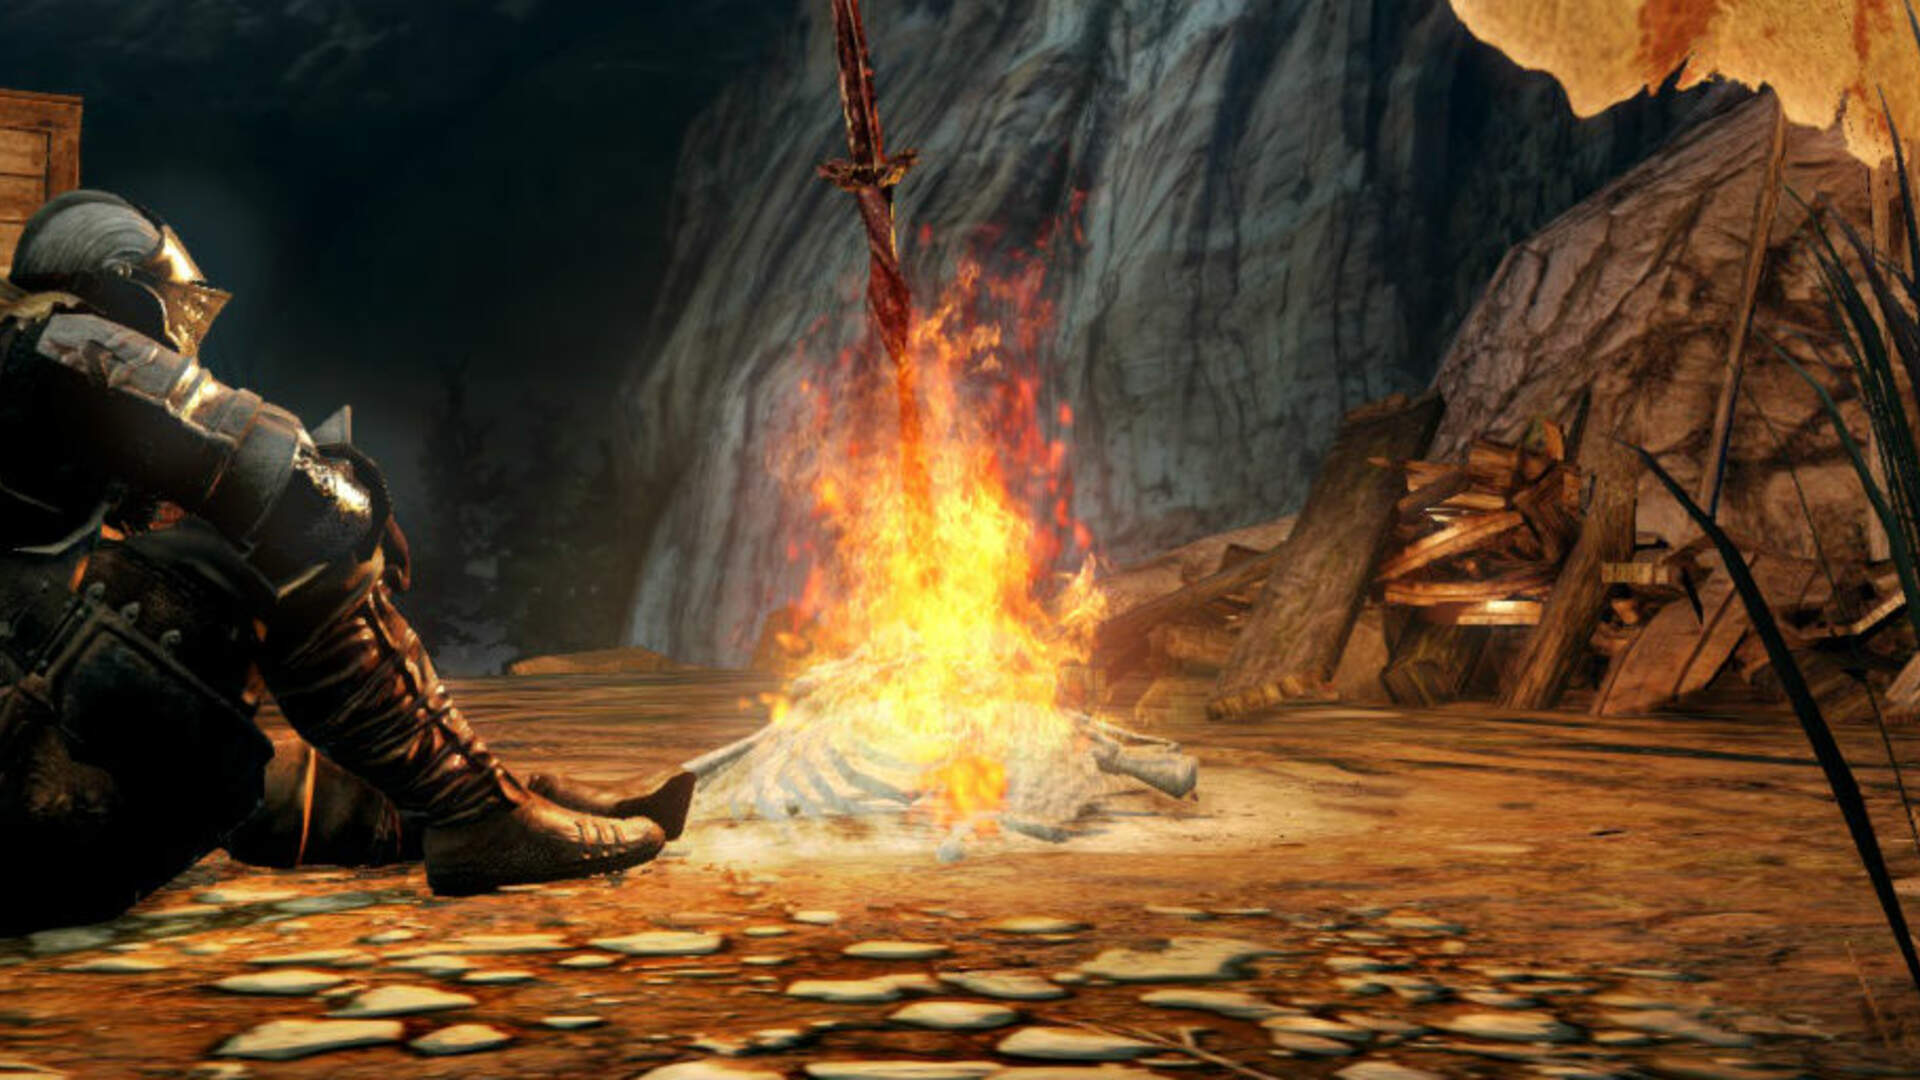 Dark Souls 2 Guide: The Throne of Want, and How to Defeat the Final Bosses